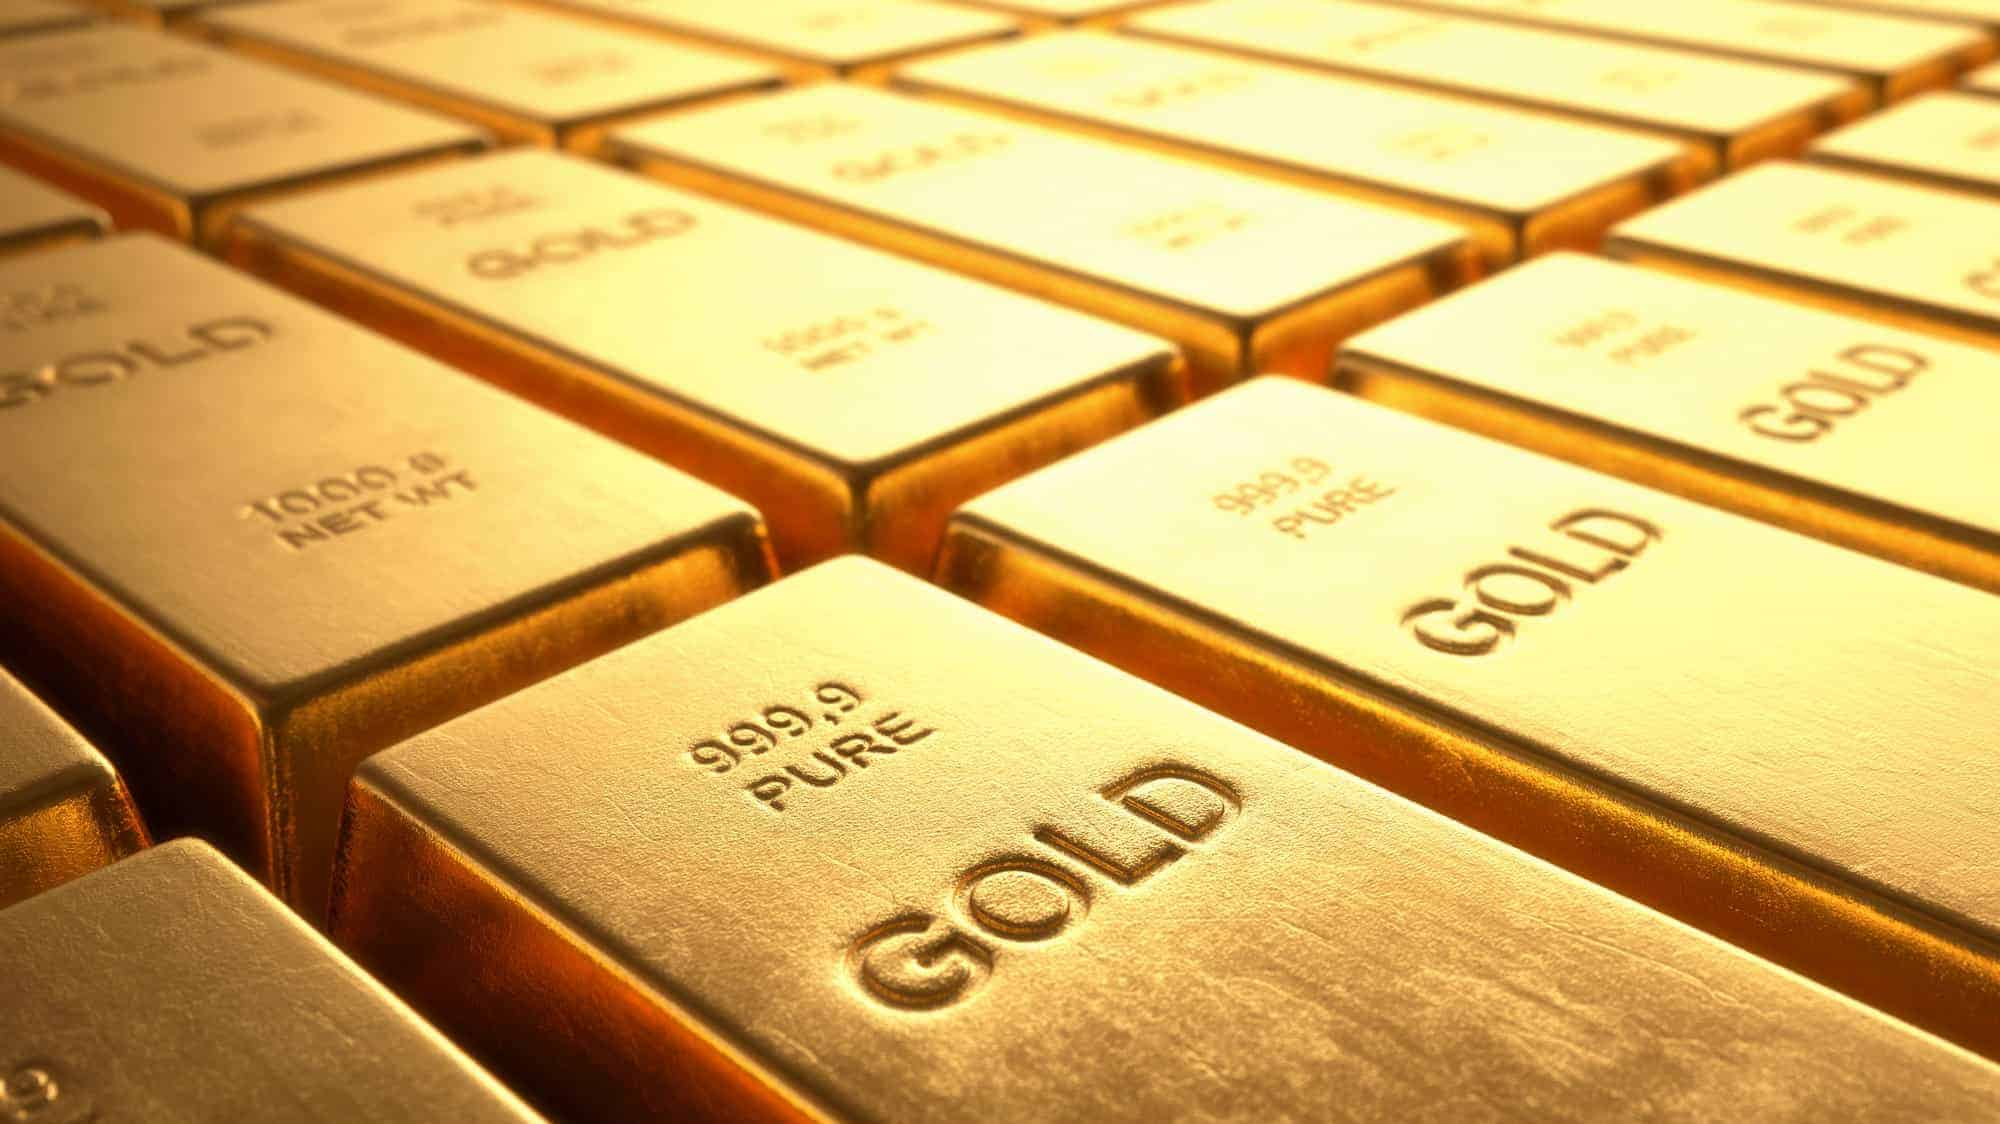 Iraq maintains the size of gold reserves at 96.3 tons